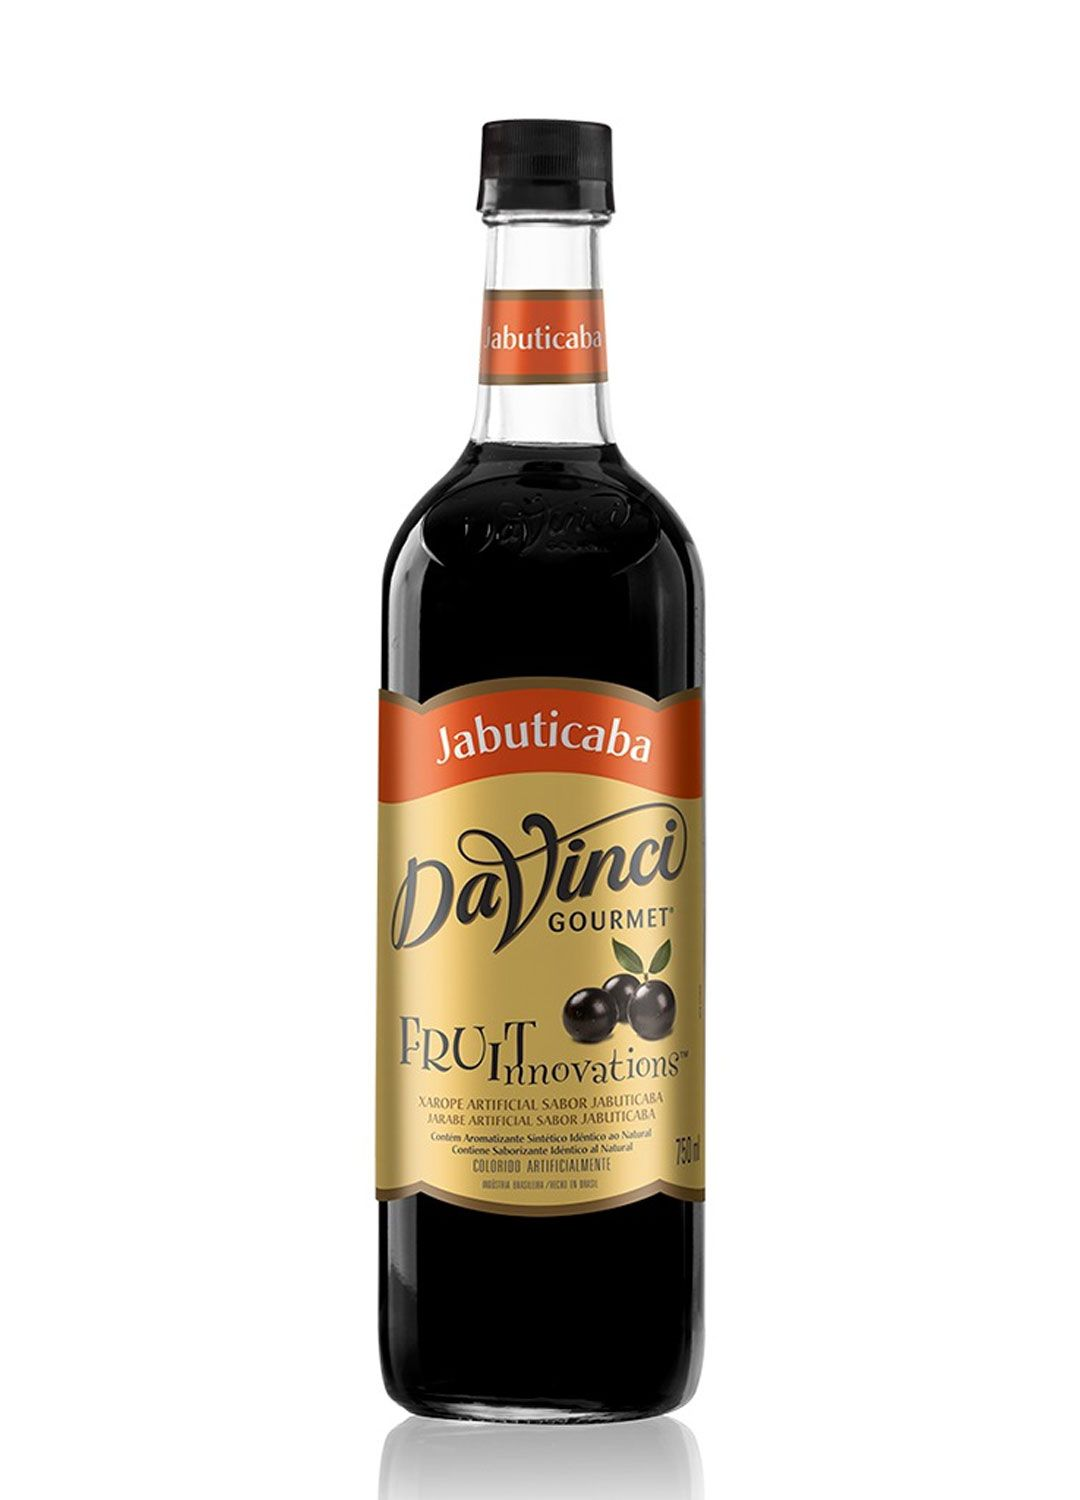 Xarope p/ Drinks Da Vinci - Jabuticaba - 750 ml